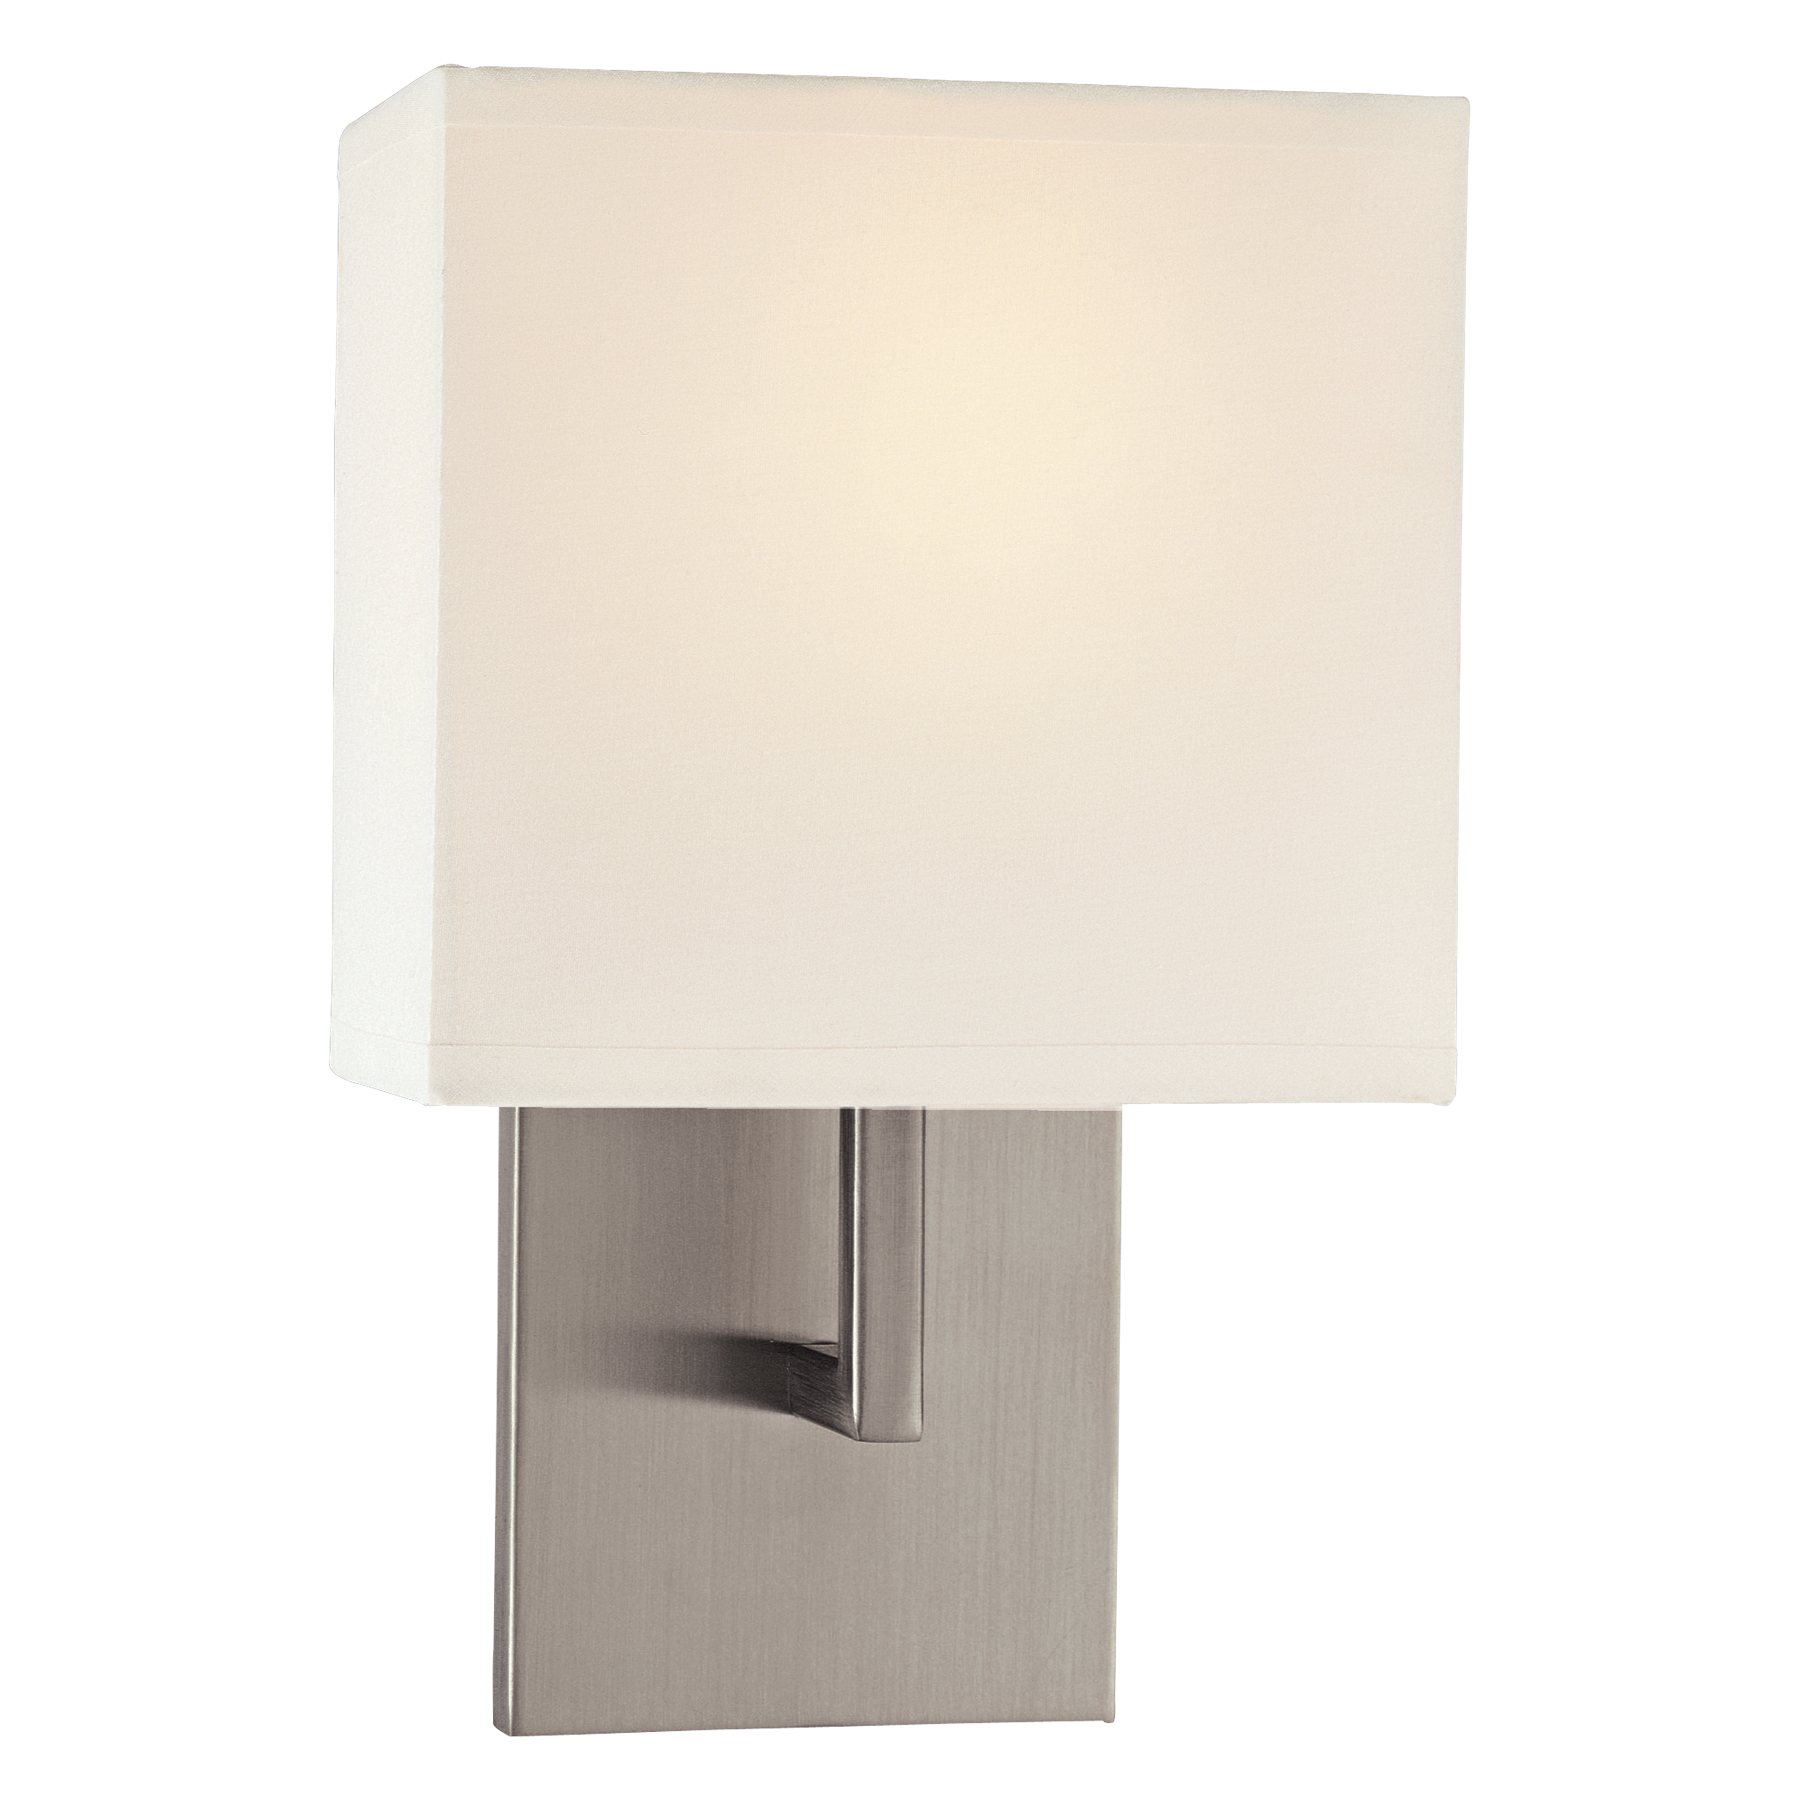 P470 wall sconce by george kovacs p470 084 mozeypictures Choice Image